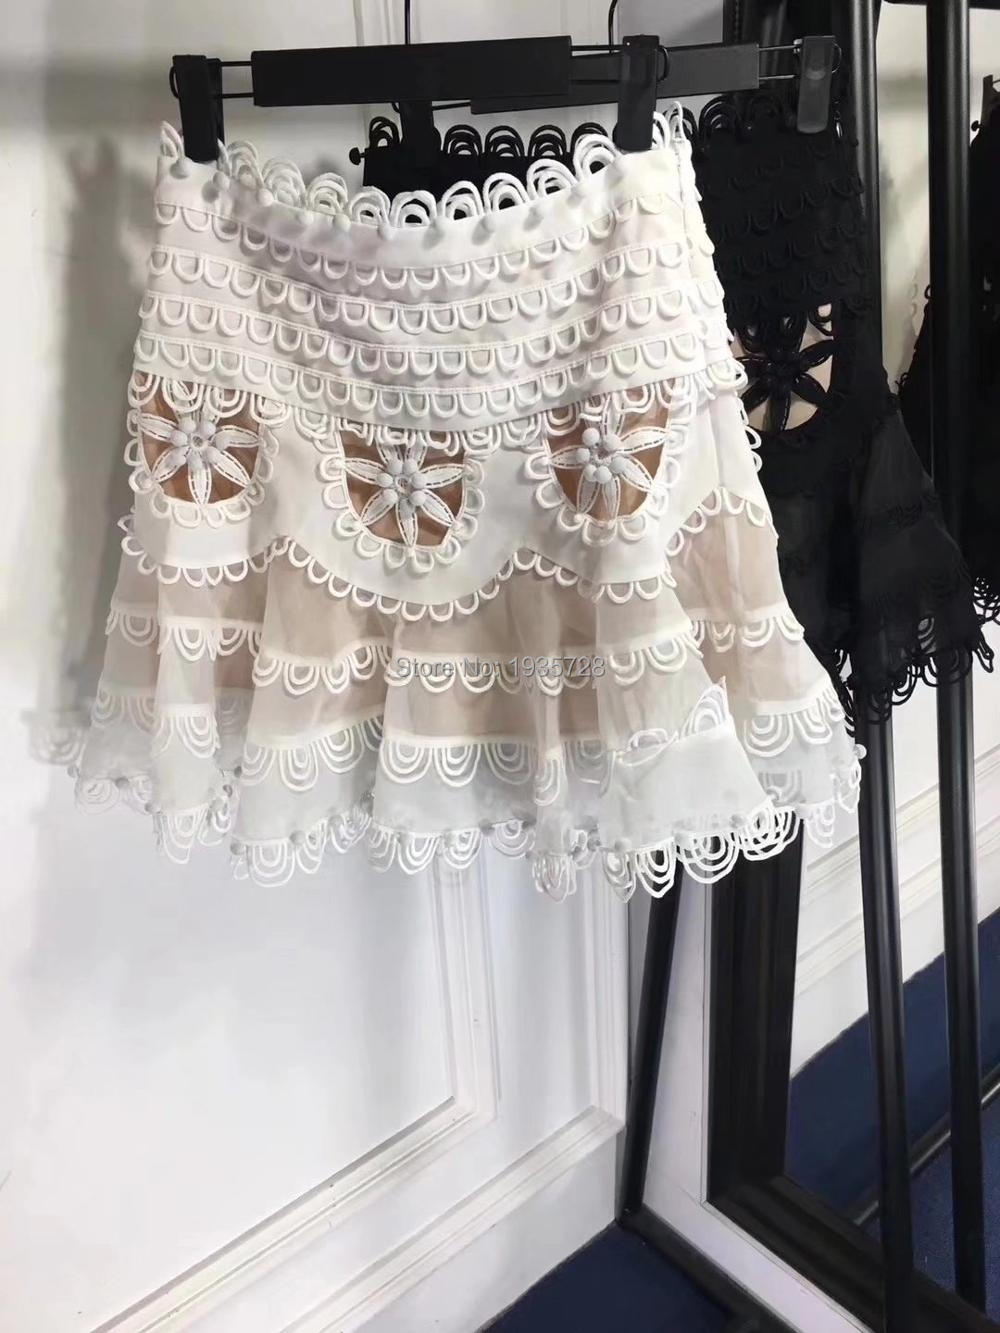 c4ae3cc2 2018SS Runway GOLDEN White CUT OUT Flowers Lace Embroidered Paneled mini  Skirt flipped Mini Skirt Ruffles Hem rouleau detail